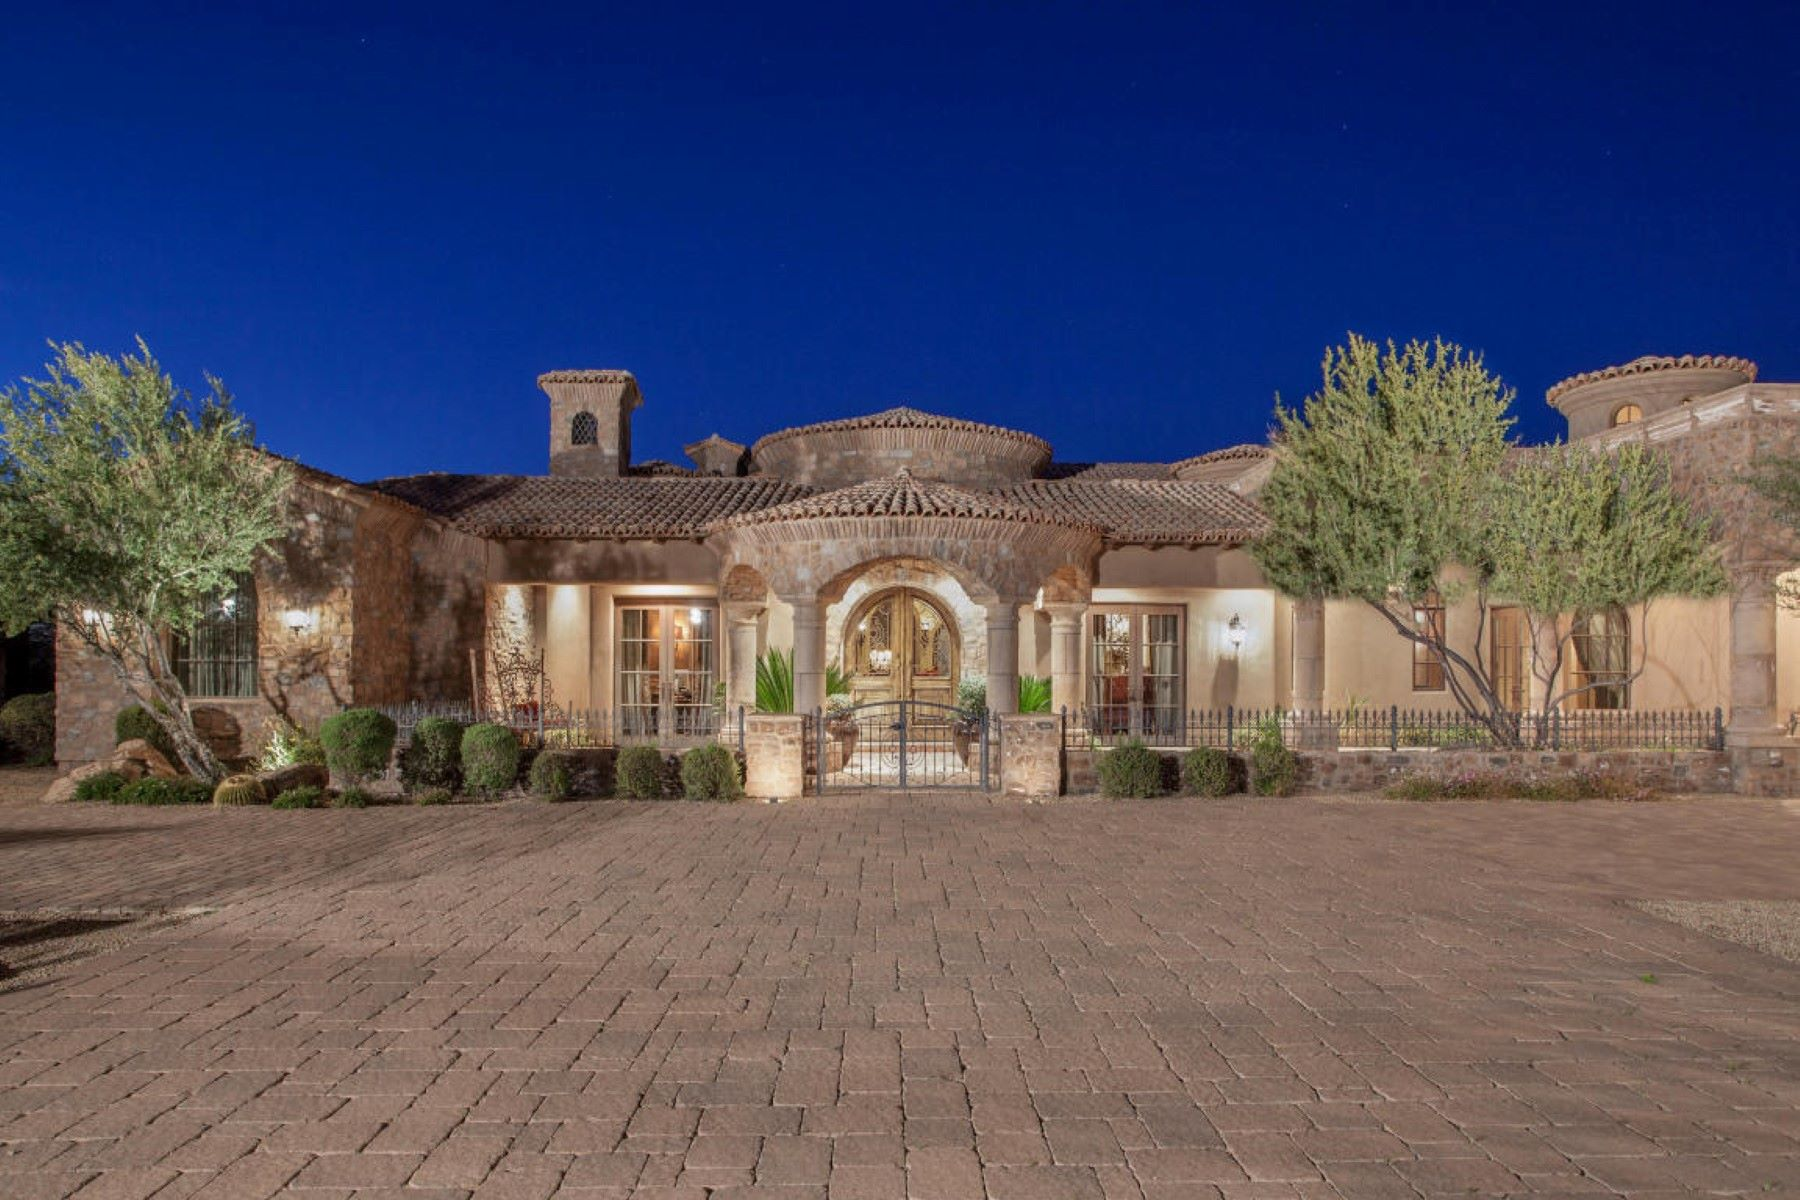 Single Family Home for Sale at Incredible sprawling estate situated on acres of beautiful Sonoran Desert 8143 E Stagecoach Pass Scottsdale, Arizona, 85266 United States